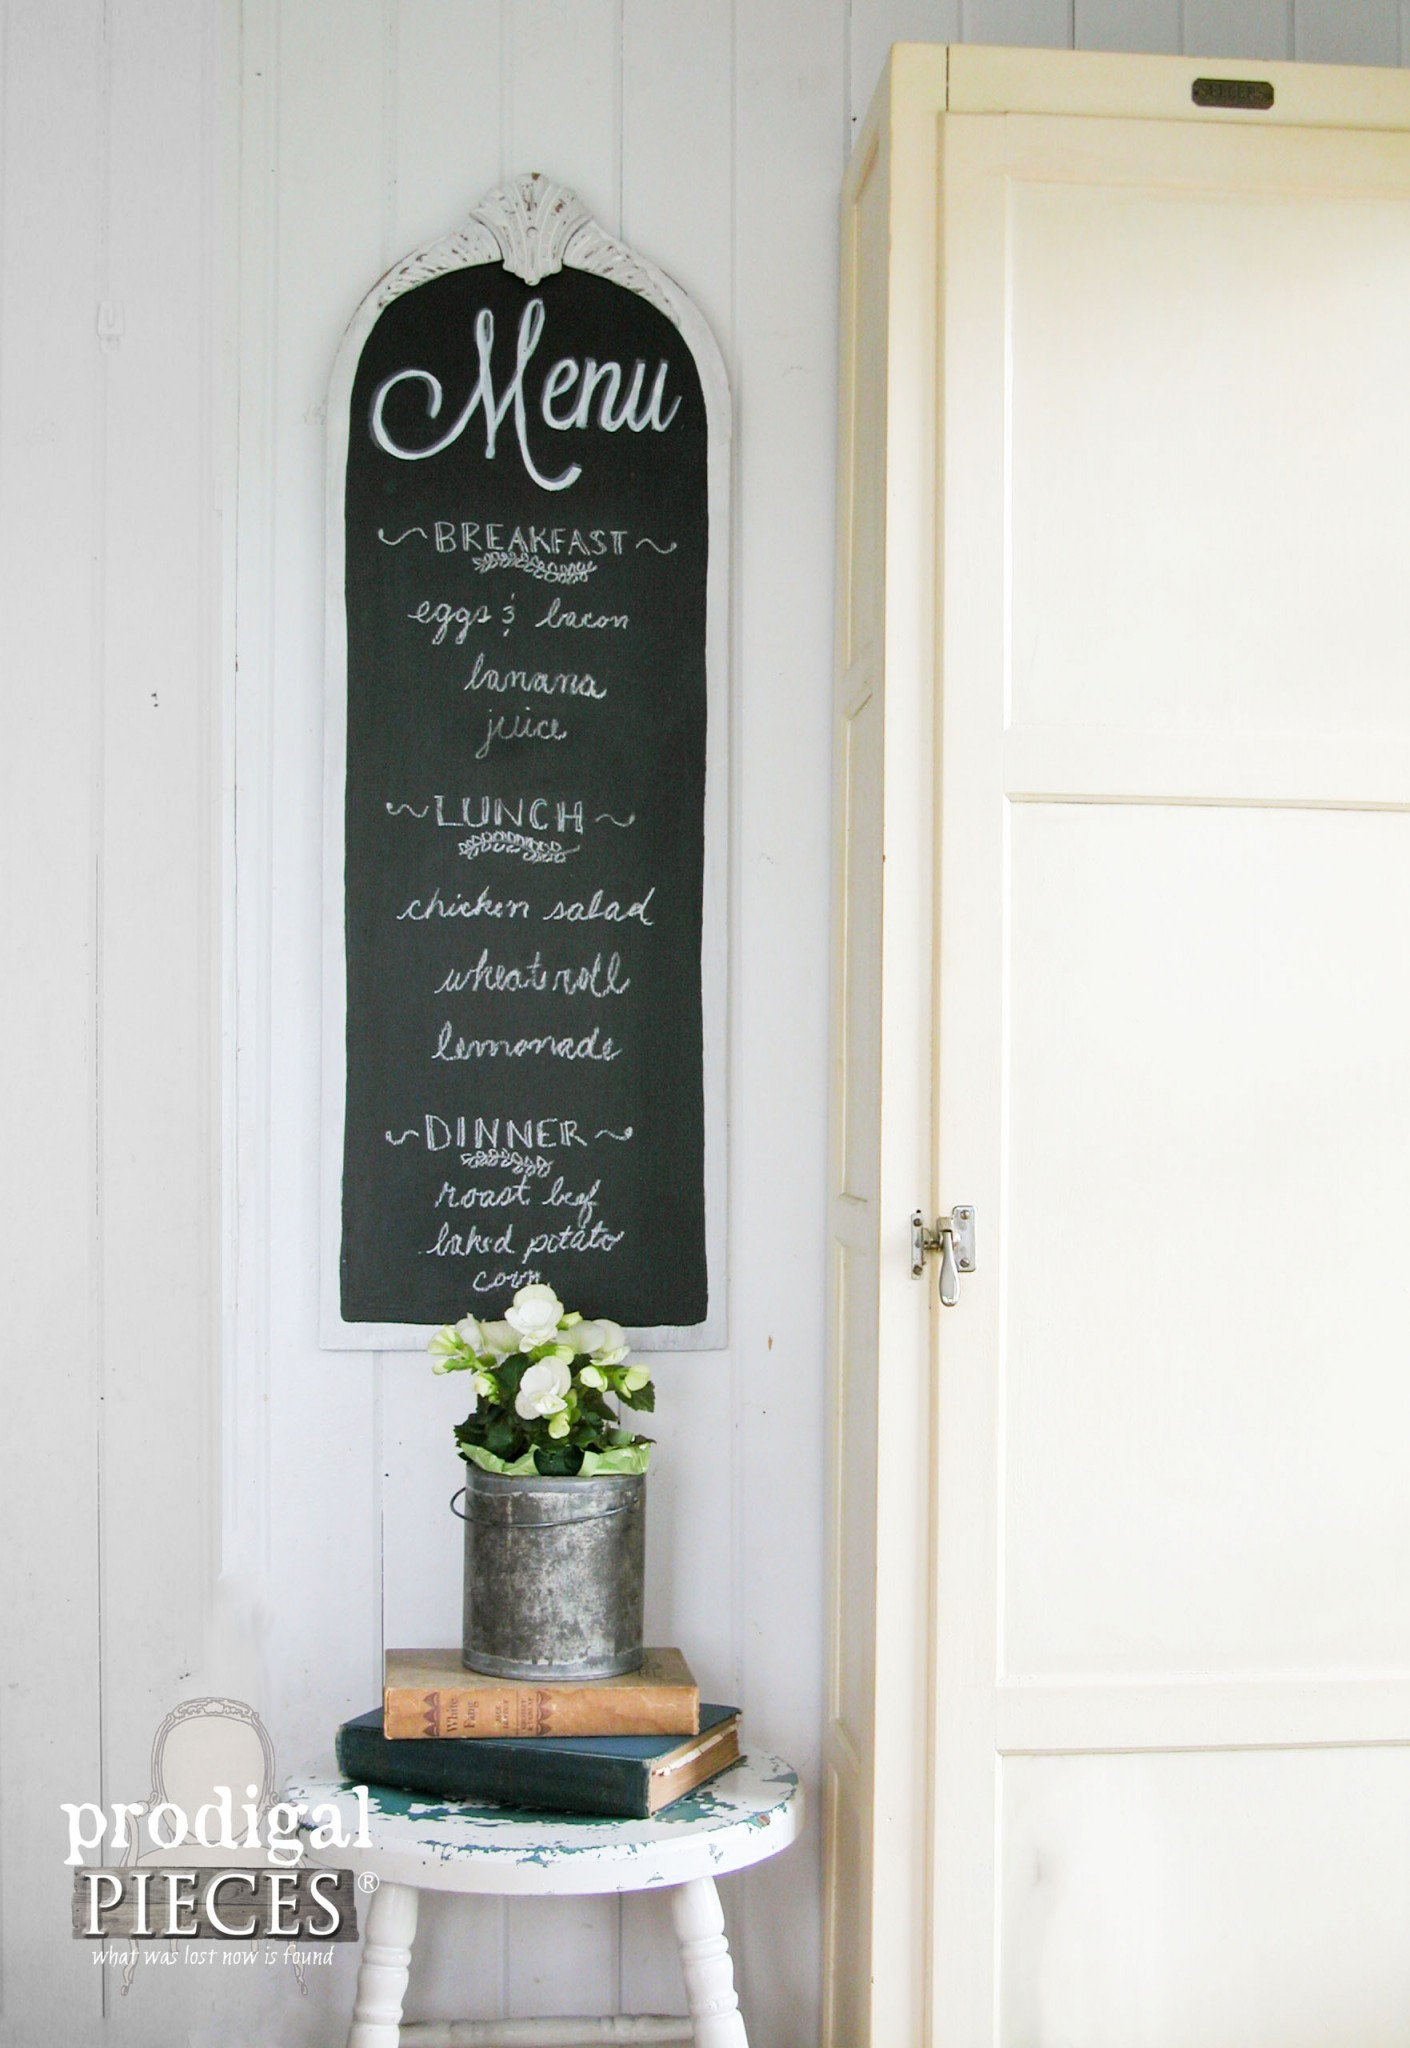 Repurposed Vanity Mirror Turned Chalkboard Menu with Tutorial by Prodigal Pieces | www.prodigalpieces.com